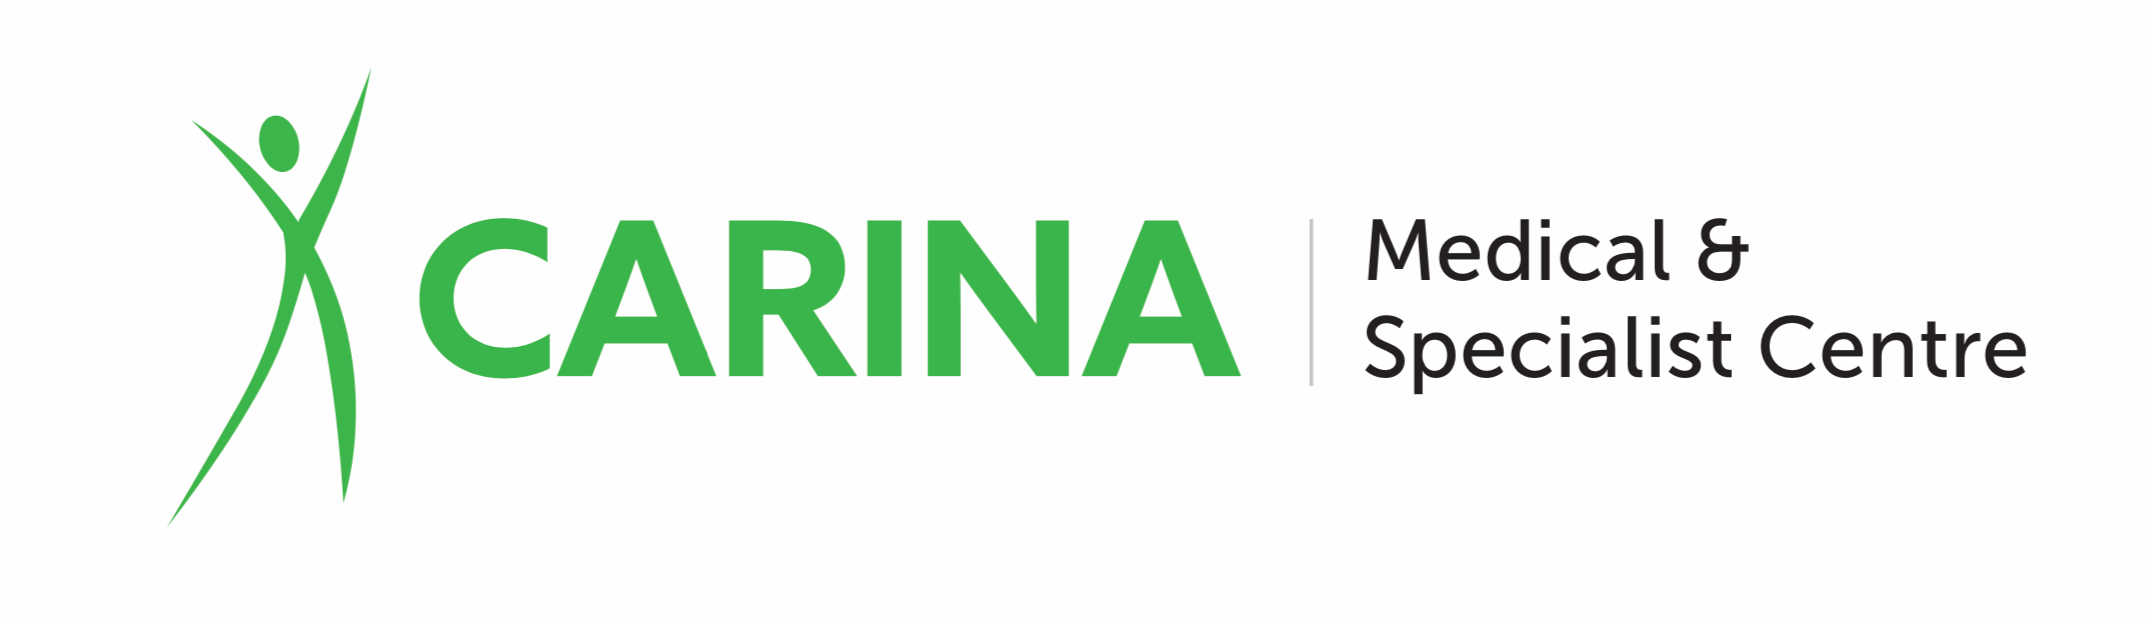 logo for Carina Medical & Specialist Centre Doctors